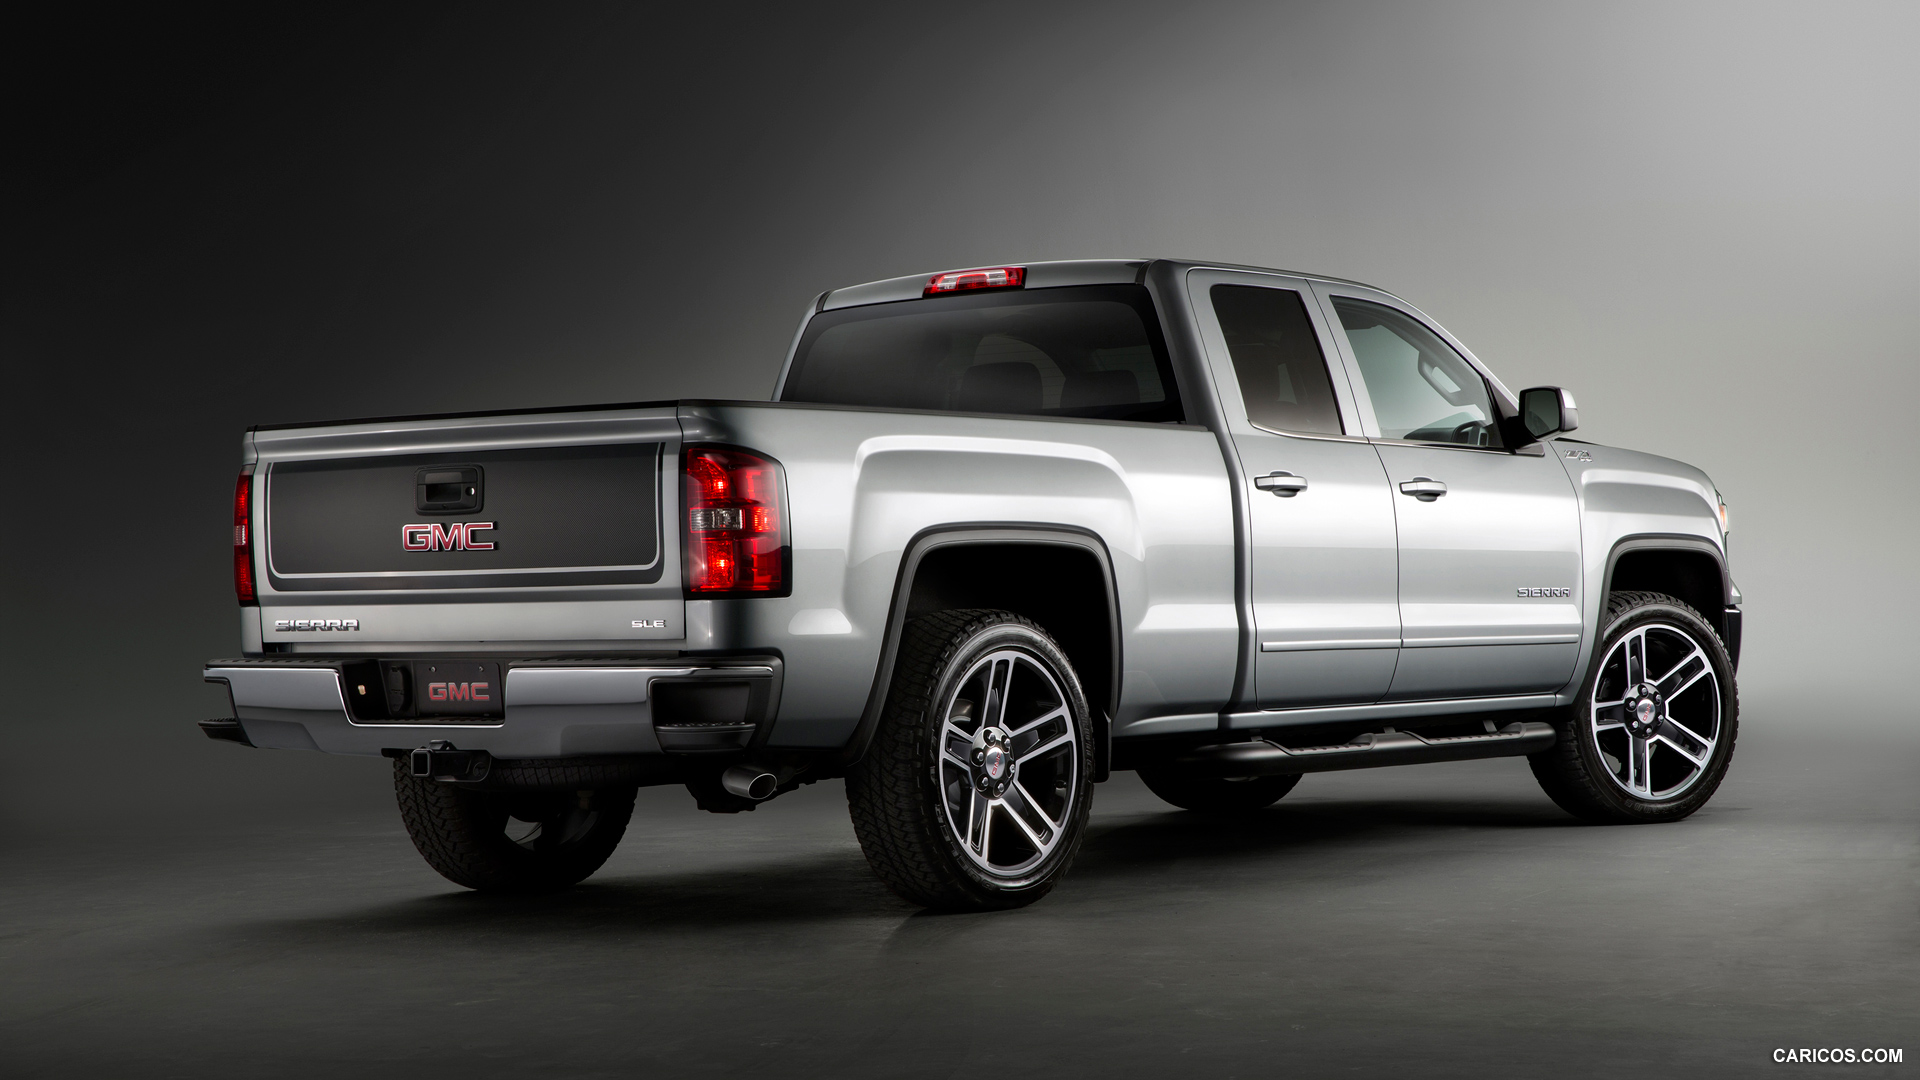 GMC Sierra Carbon Edition photos - PhotoGallery with 6 pics| CarsBase.com